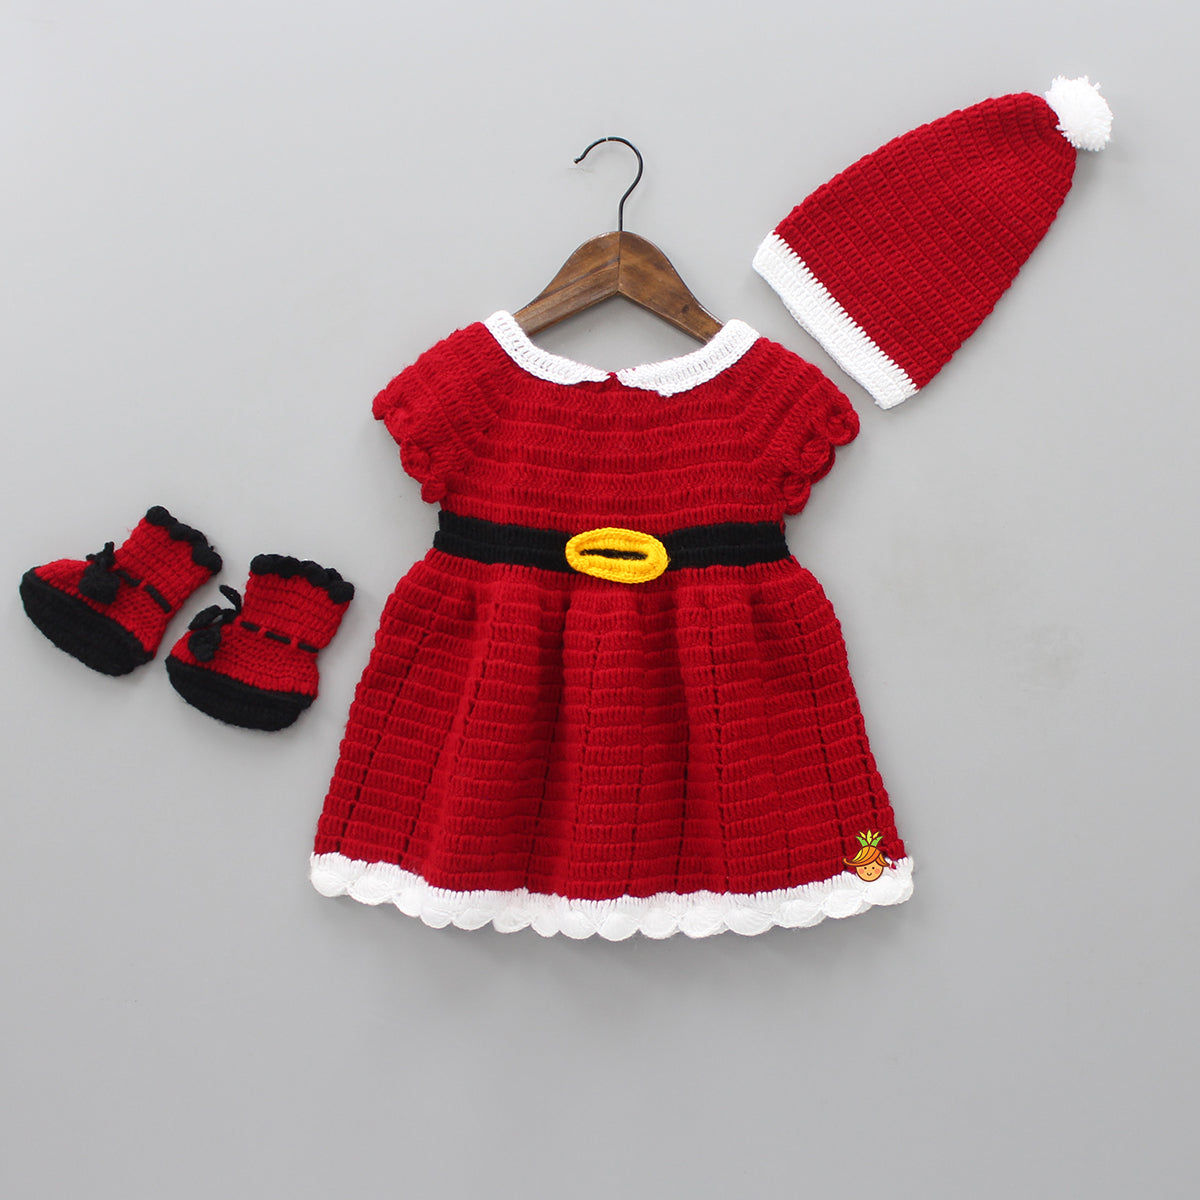 Red Knitted Santa Dress With Cap And Booties